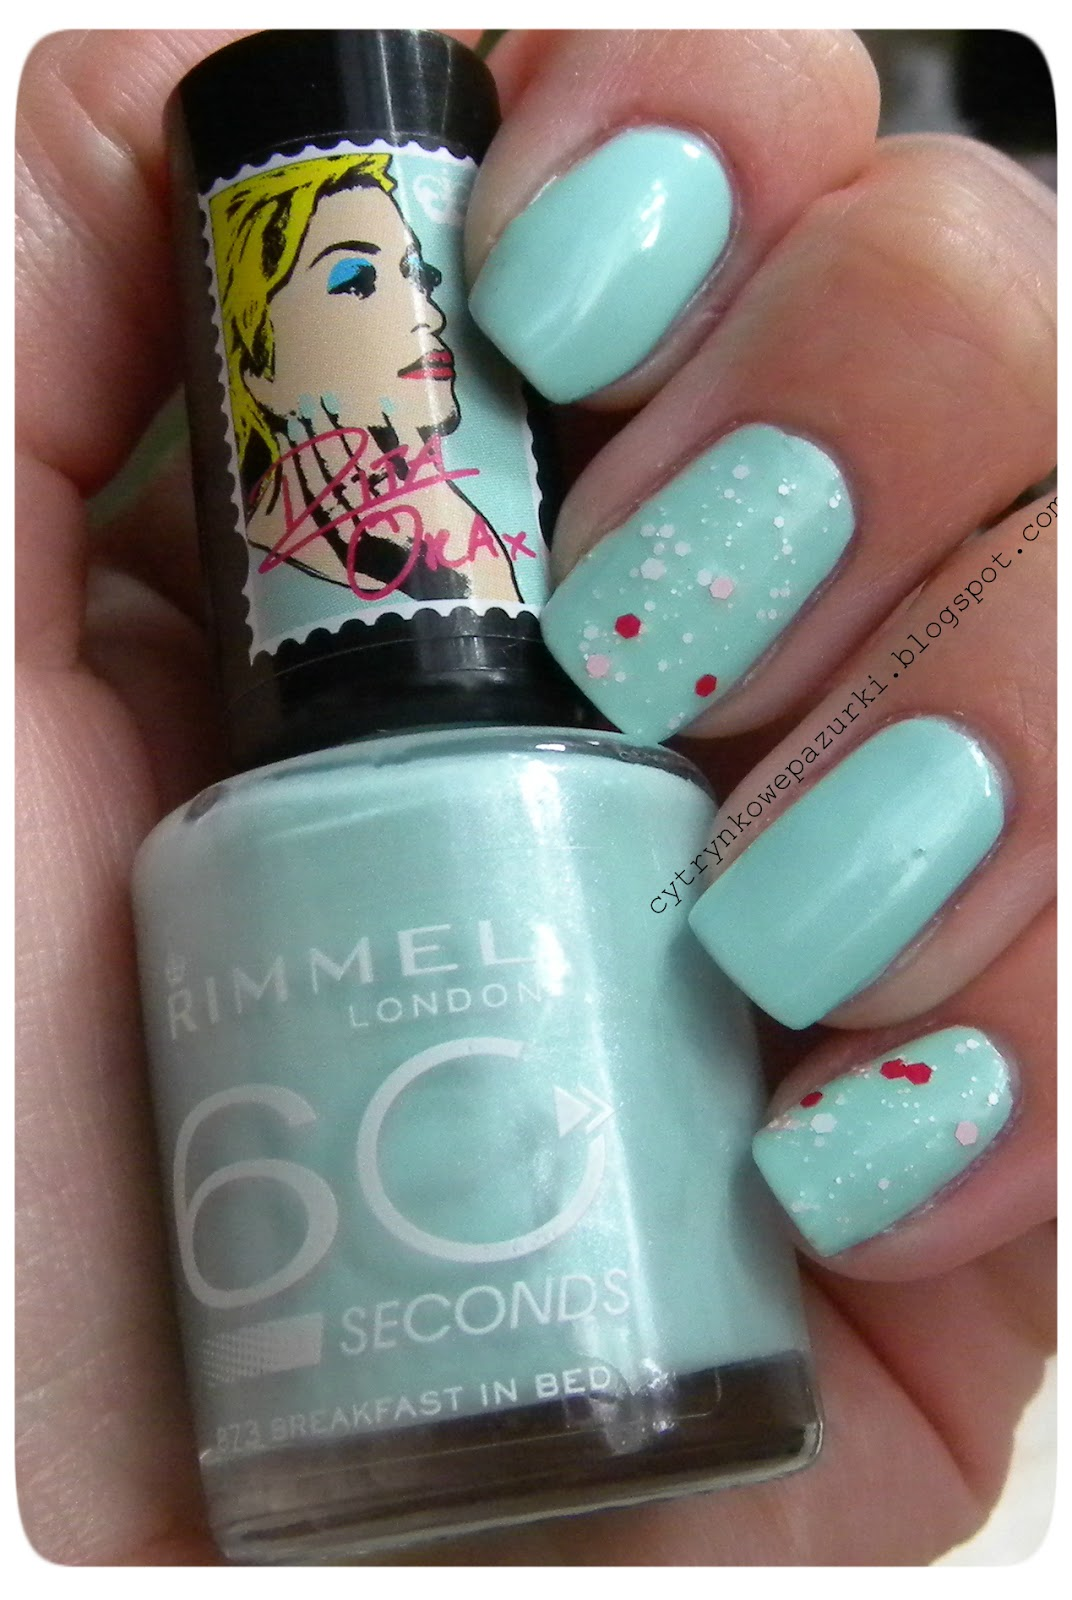 Rimmel 60 Seconds Rita Ora 873 Breakfast in bed